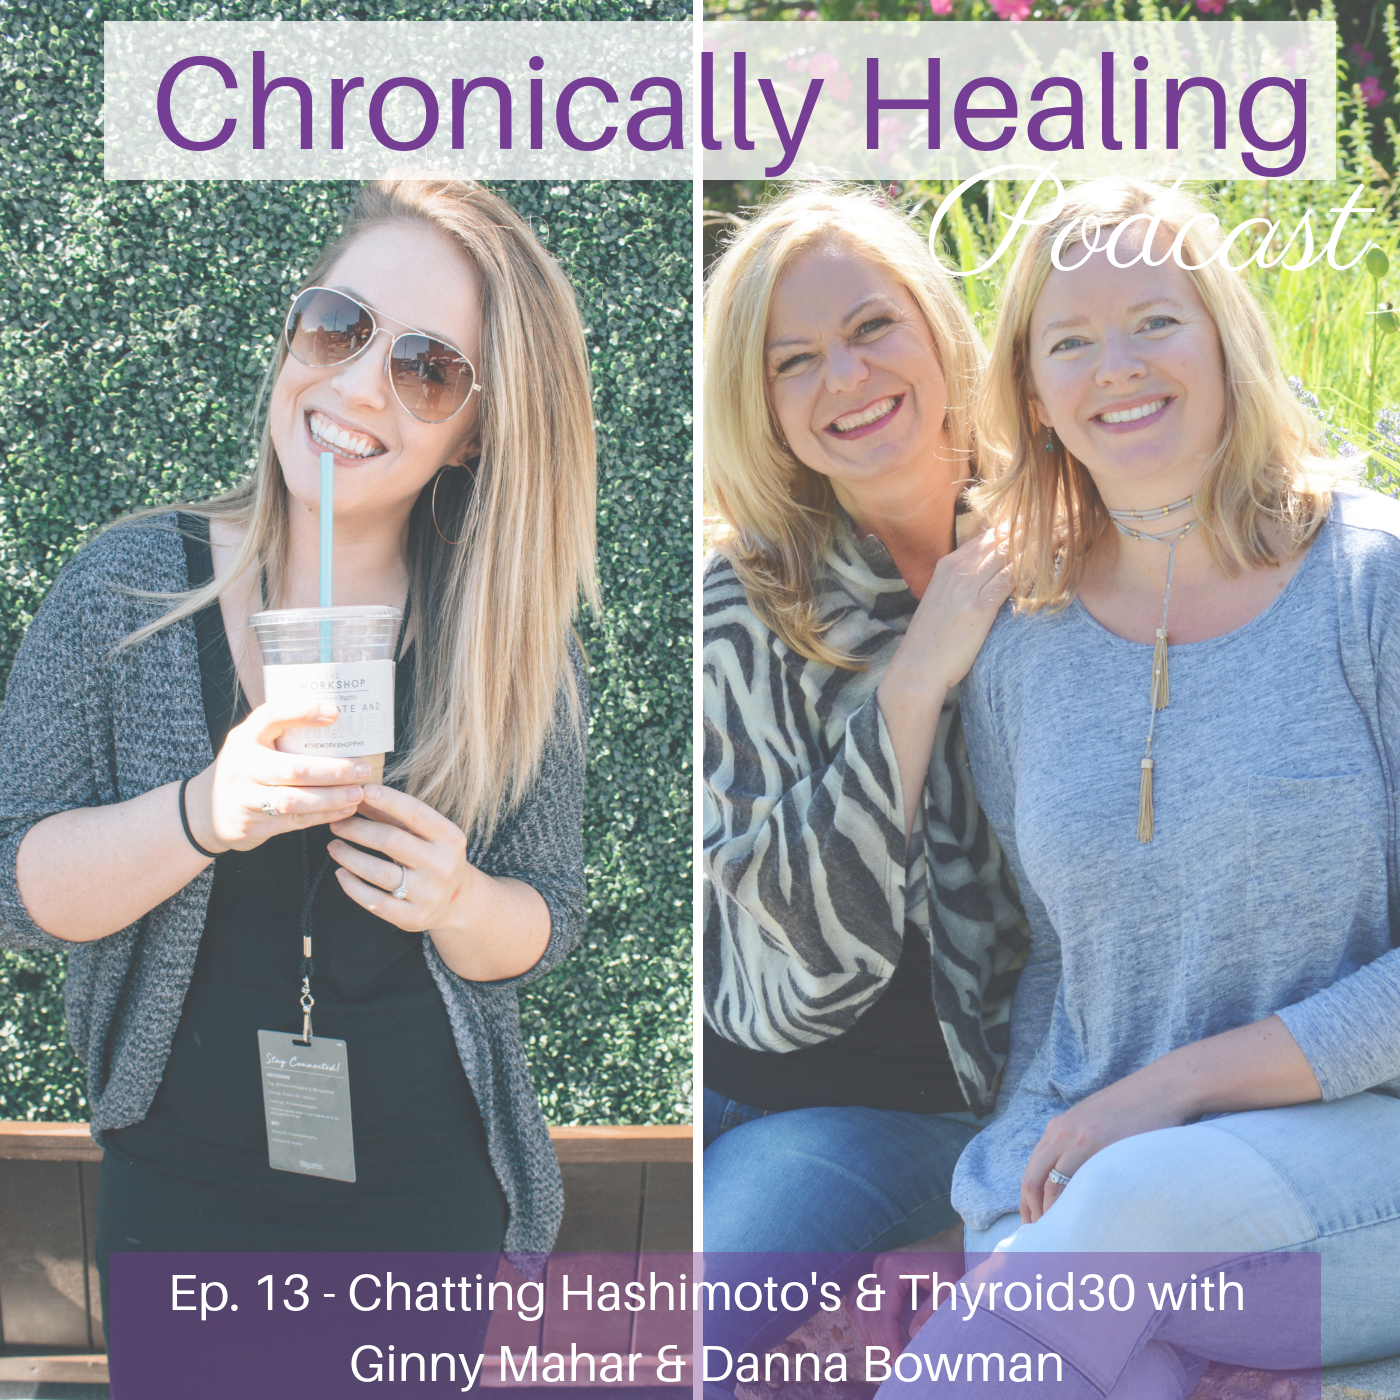 Chronically Healing Podcast Ep. 13 – Chatting Hashimoto's with the Danny Bowman & Ginny Mahar of Thyroid Refresh